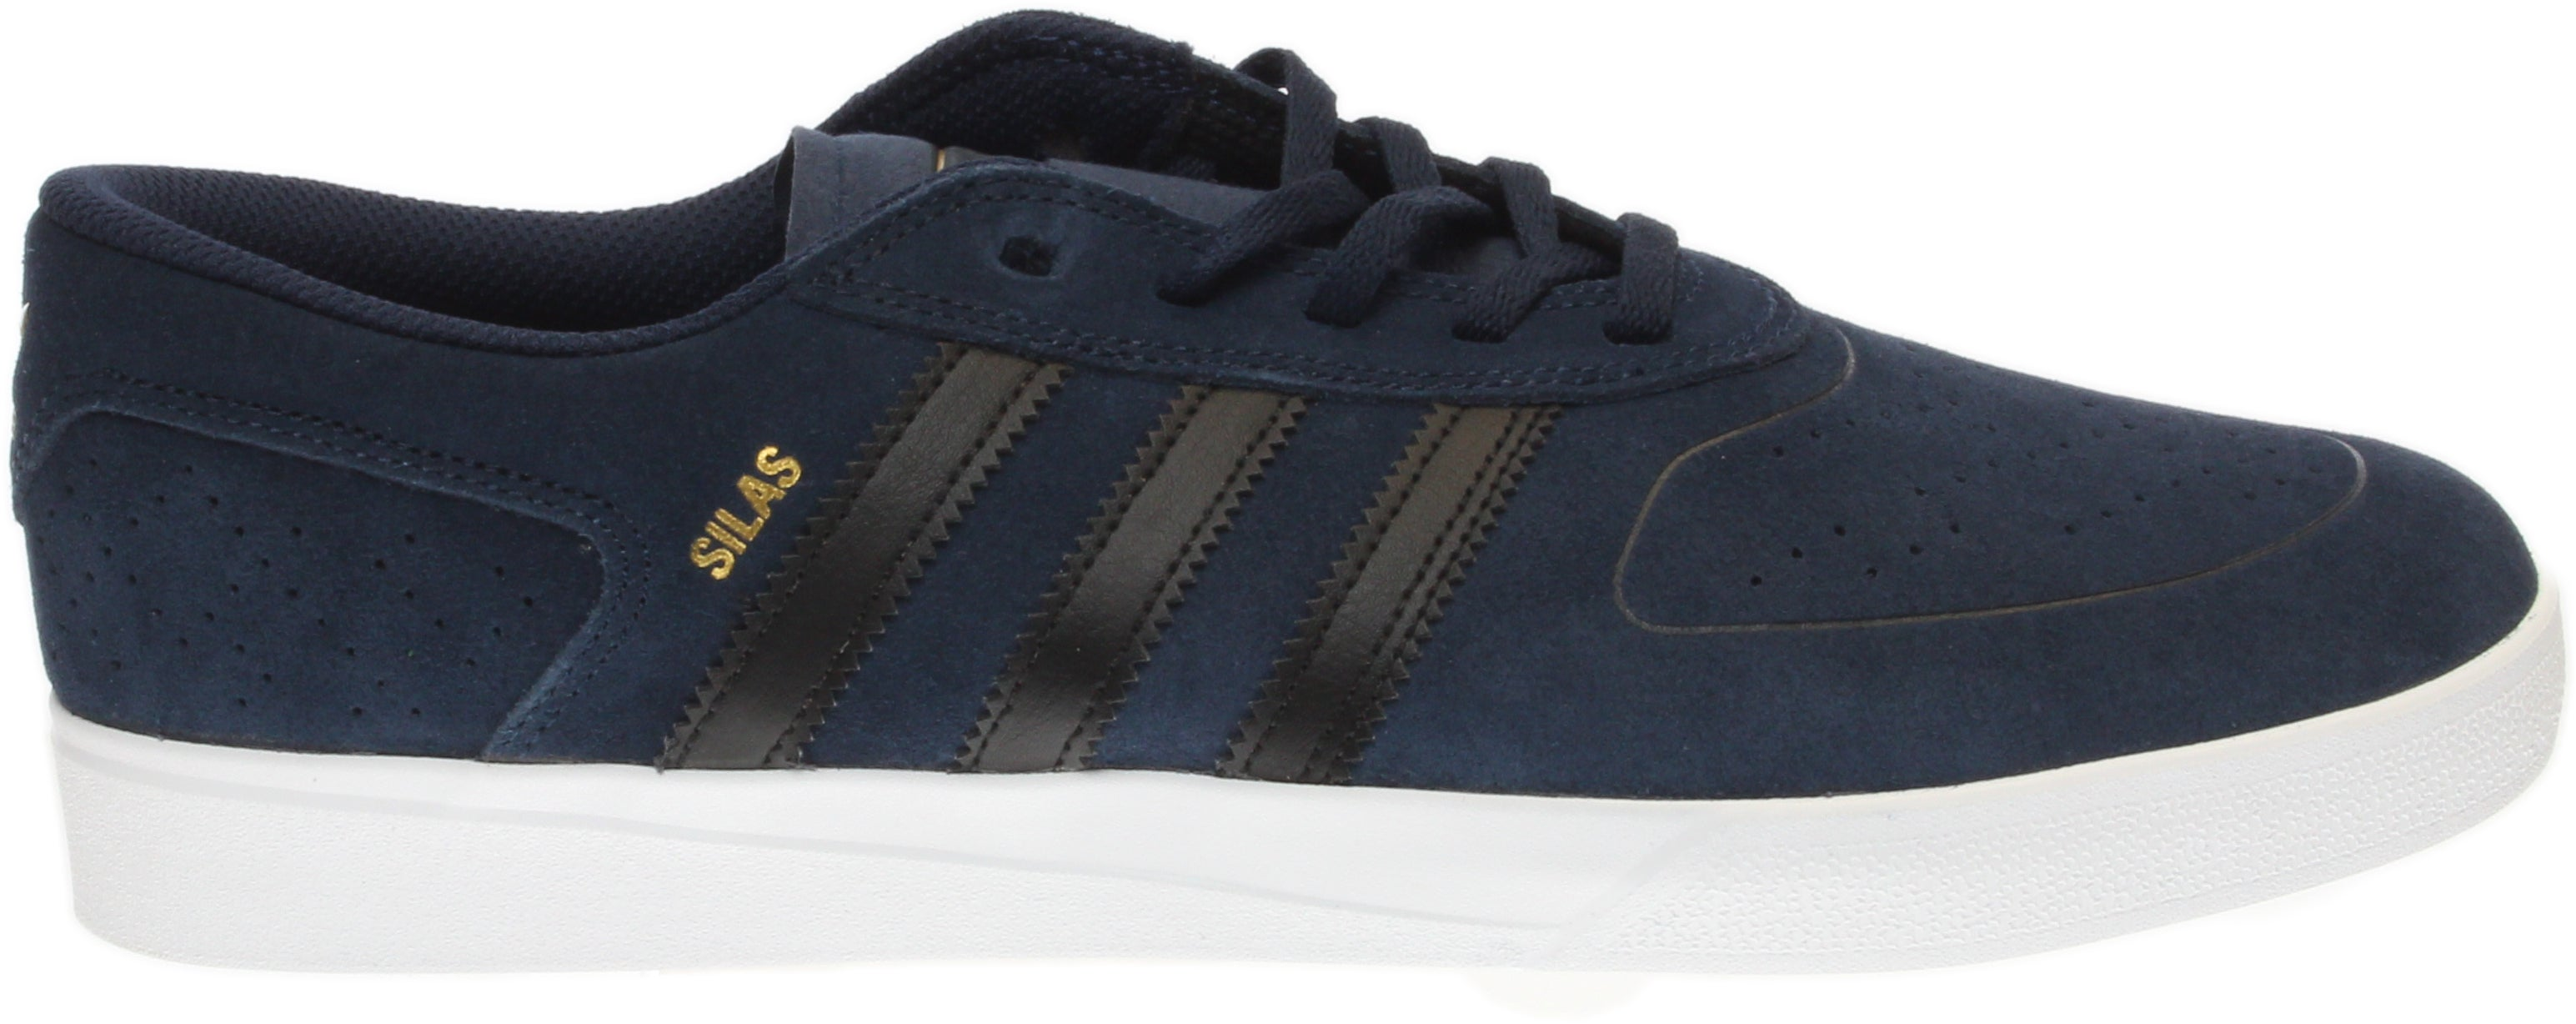 185122748b Details about adidas Silas Vulc Adv Skate Shoes - Navy - Mens